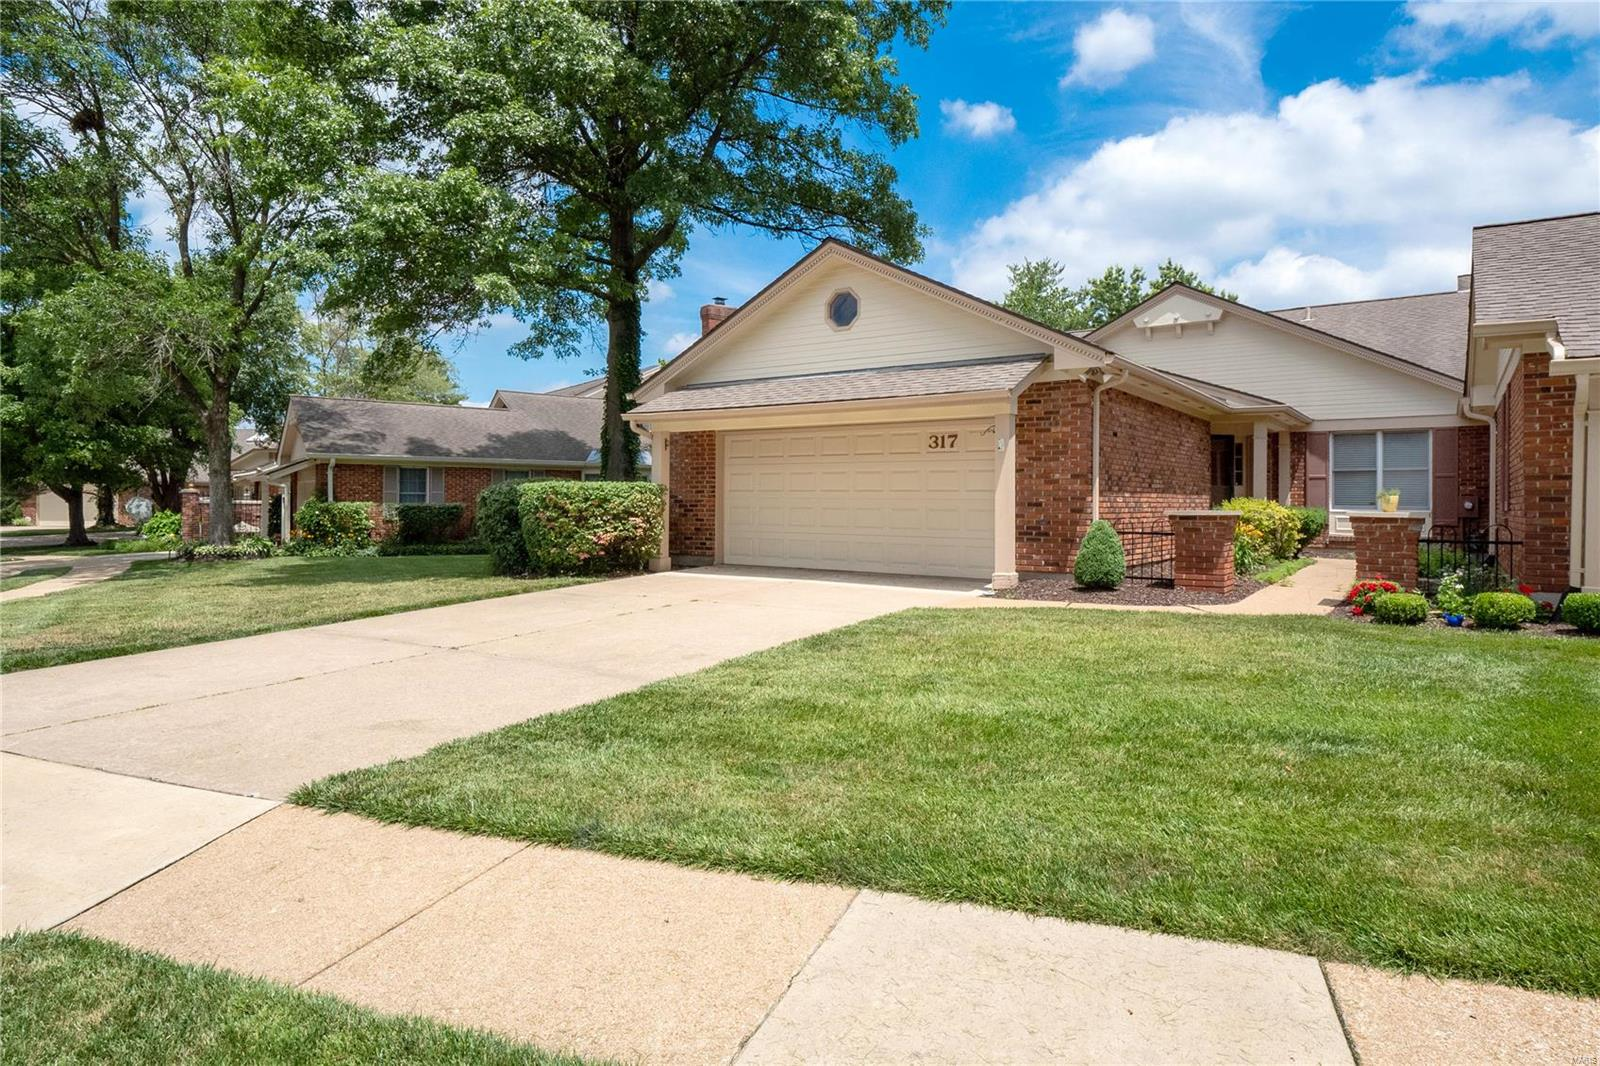 317 Morristown Court Property Photo - Chesterfield, MO real estate listing